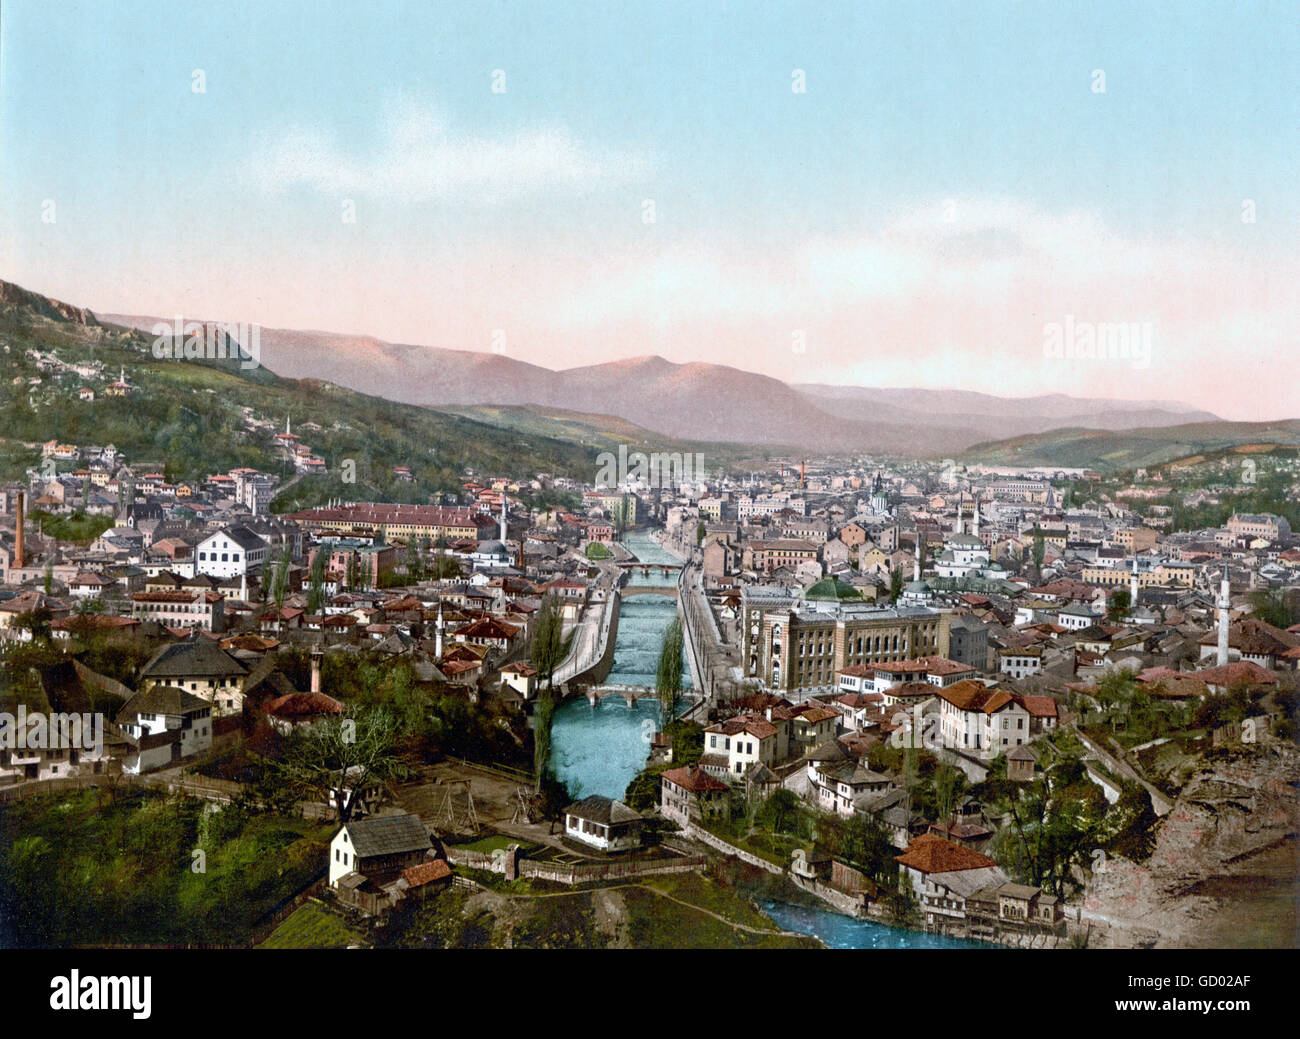 View over Sarajevo from the North at the end of the 19th century. Photochrom print from Detroit Publishing Co, c.1890 - Stock Image